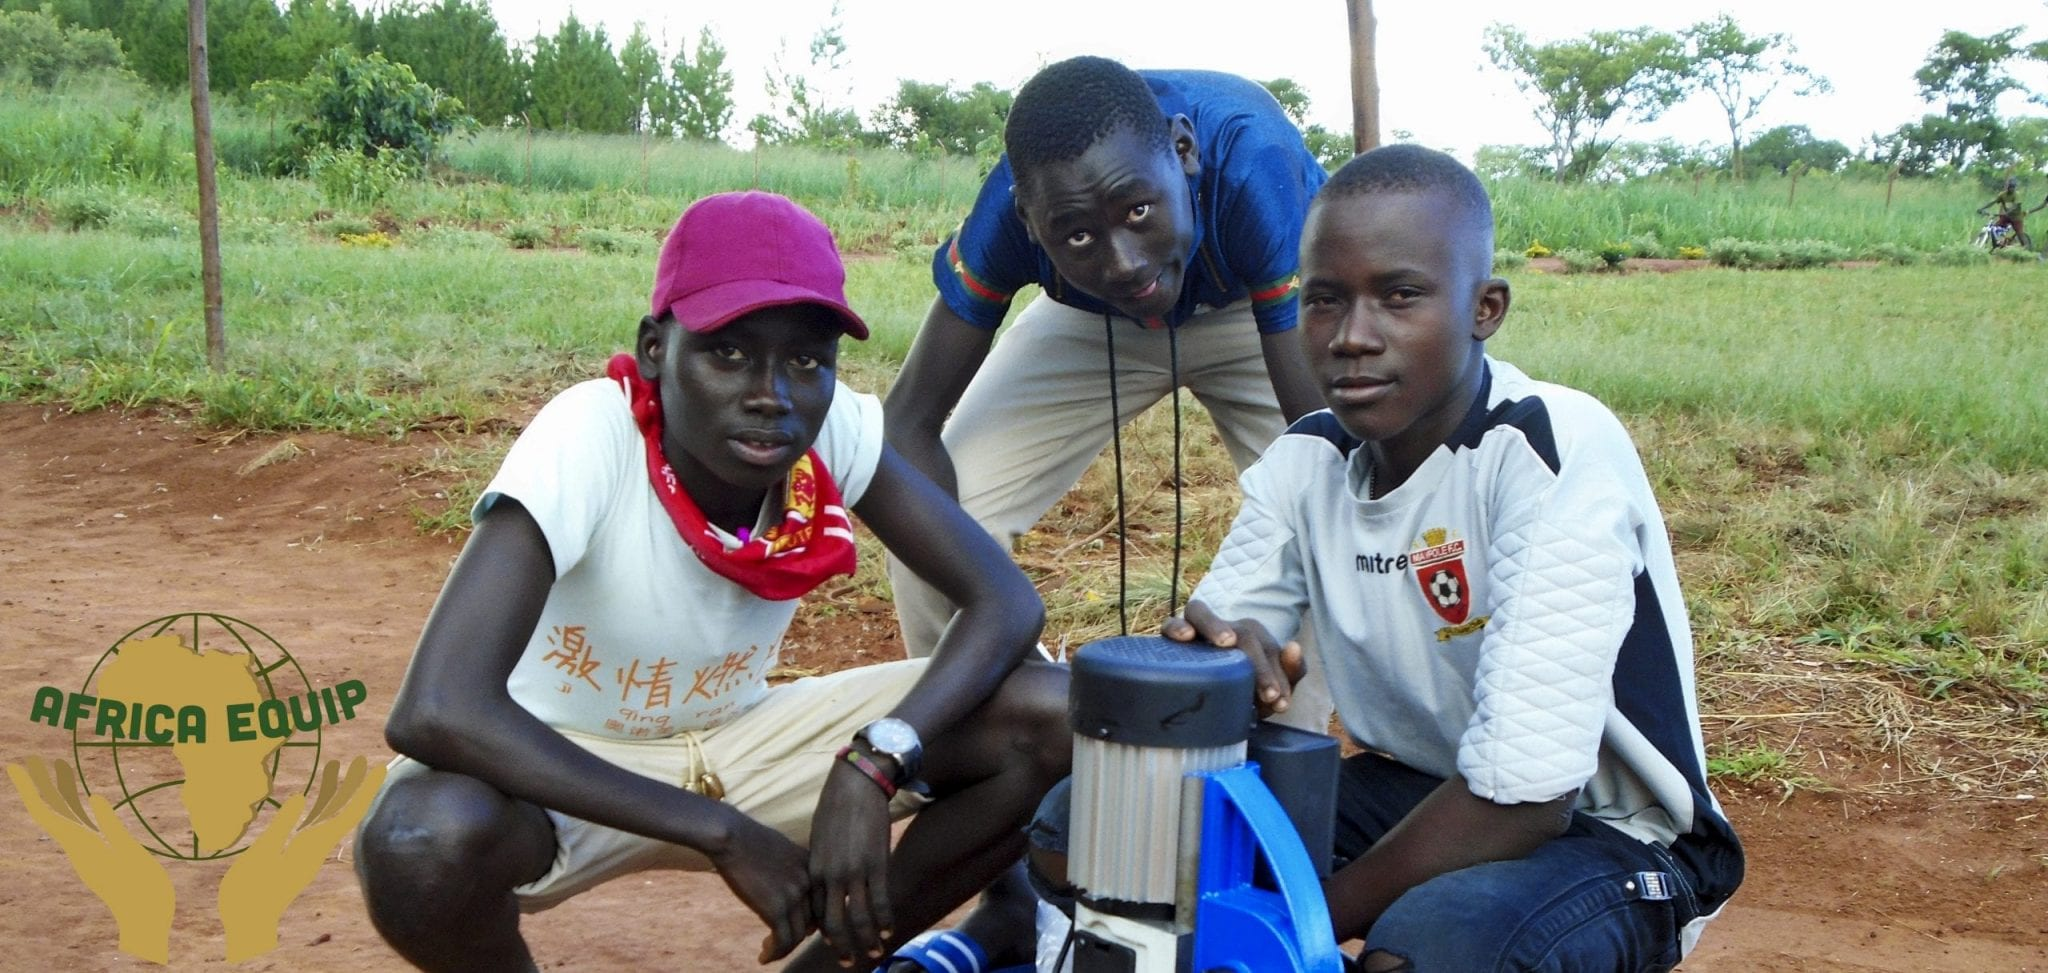 3 young boys posing with equipment sent to them by africa equip